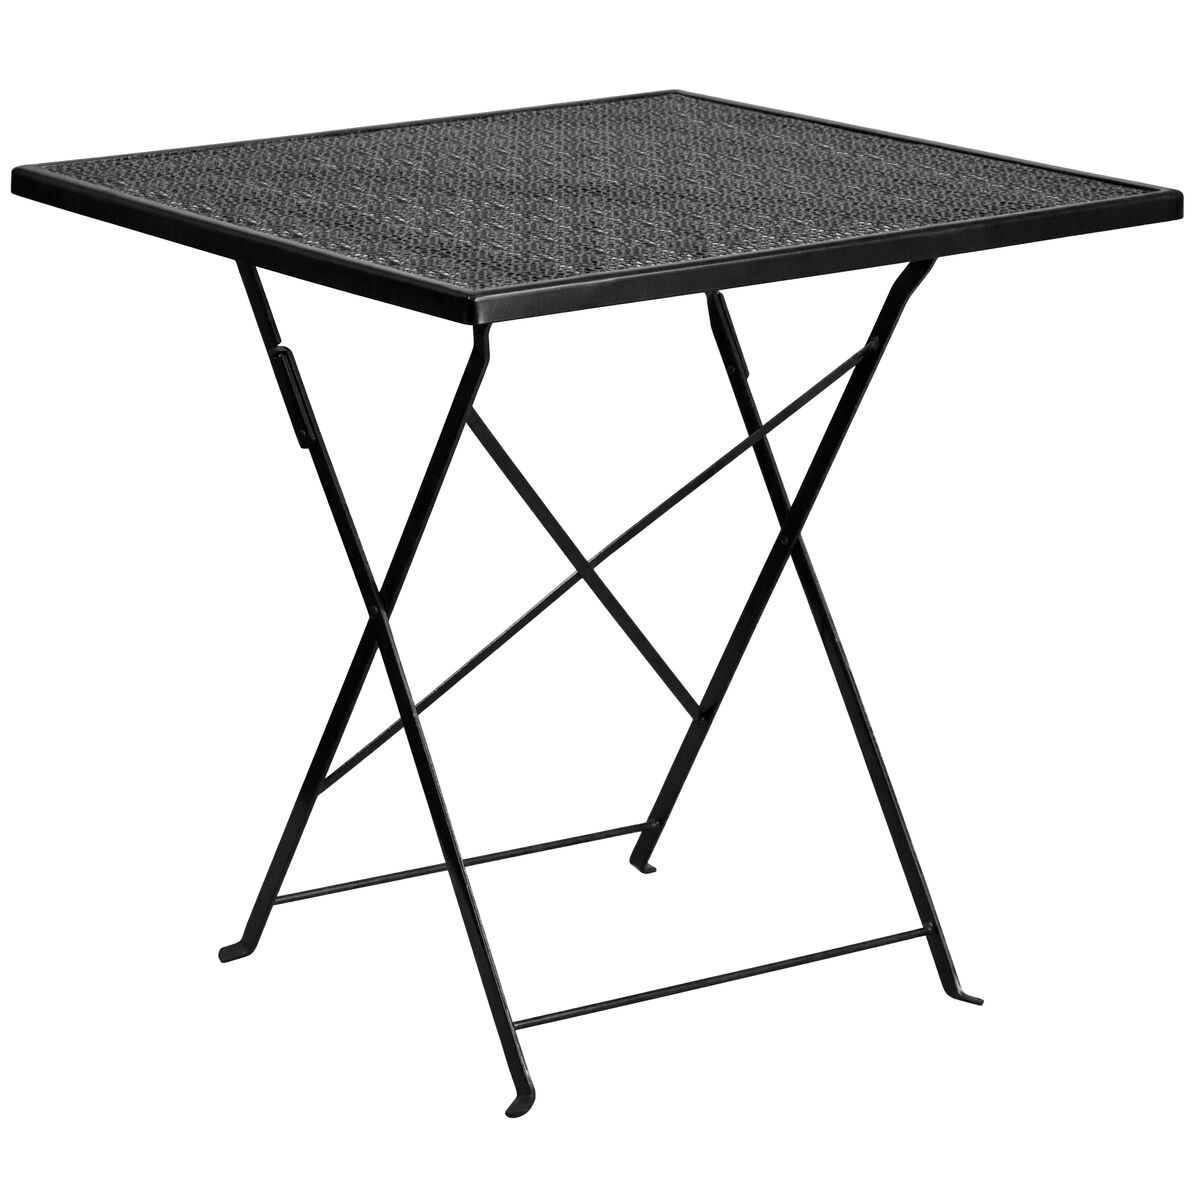 Pleasing Commercial Grade 28 Square Black Indoor Outdoor Steel Folding Patio Table Set With 2 Round Back Chairs Andrewgaddart Wooden Chair Designs For Living Room Andrewgaddartcom